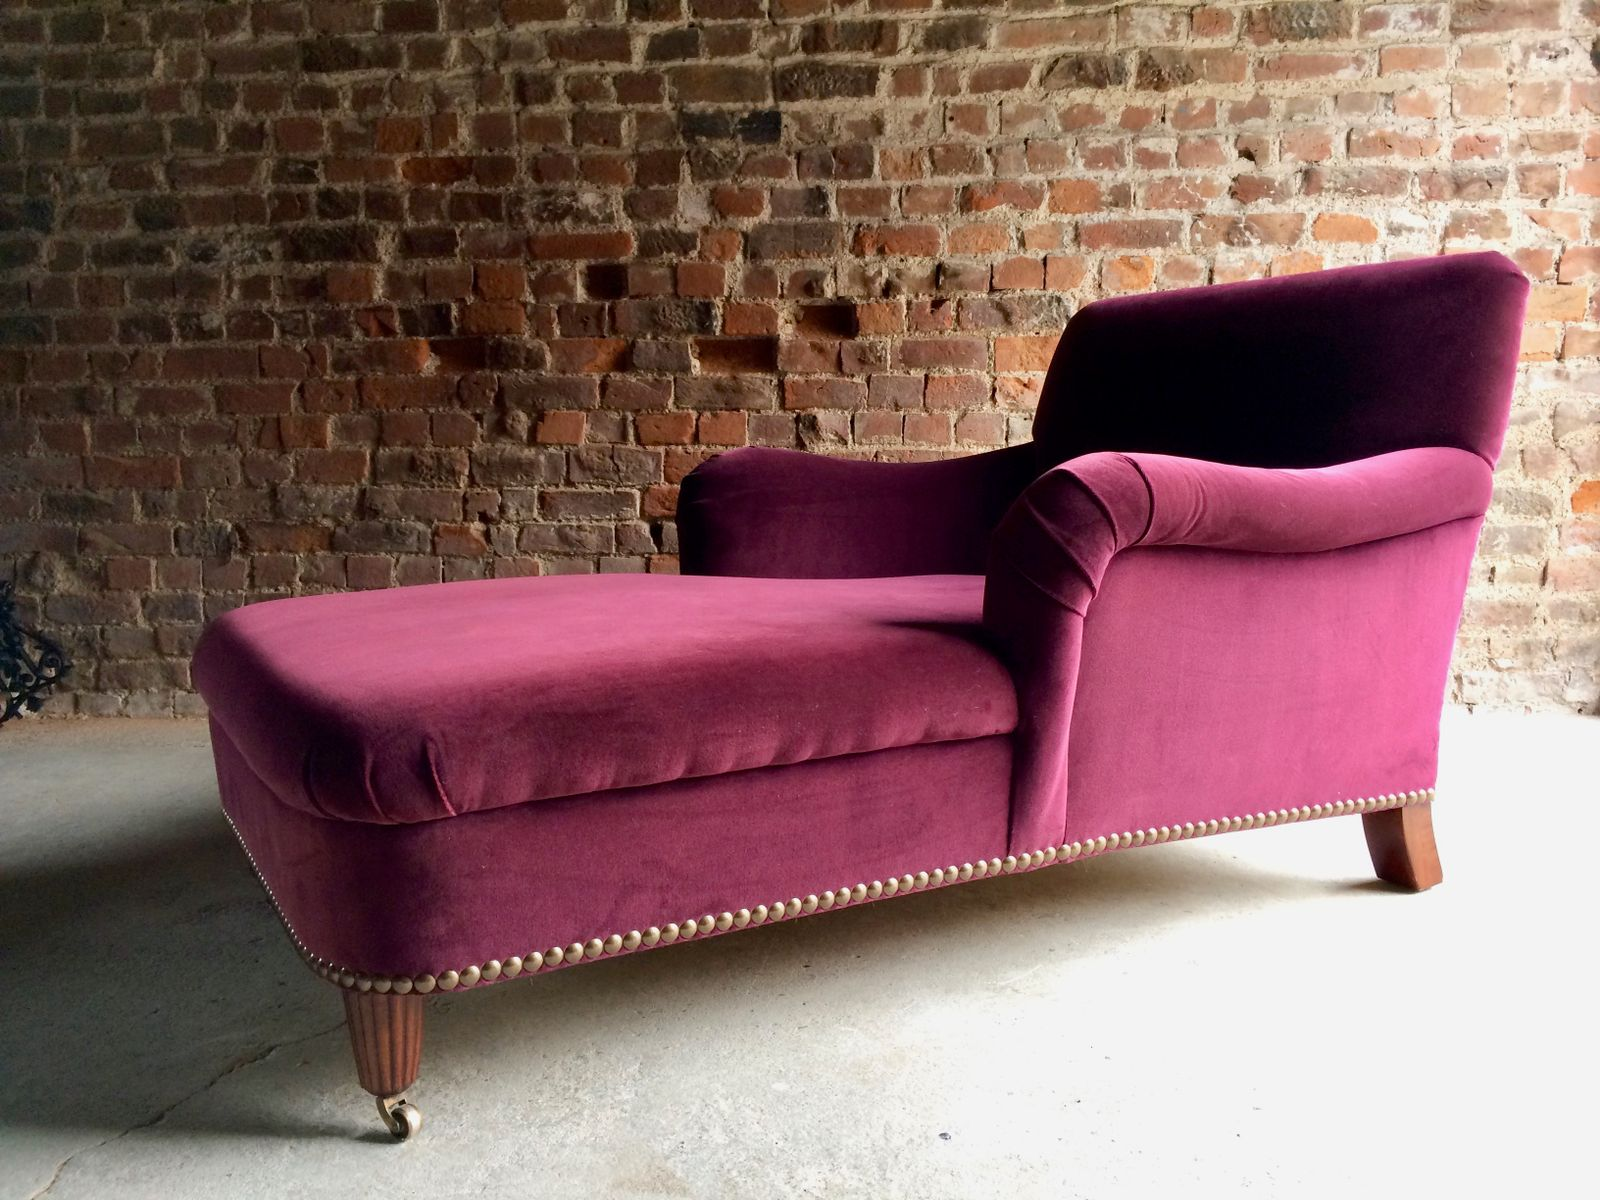 Bohemian chaise longue sofa by ralph lauren 2000s for for Chaise longue style sofa